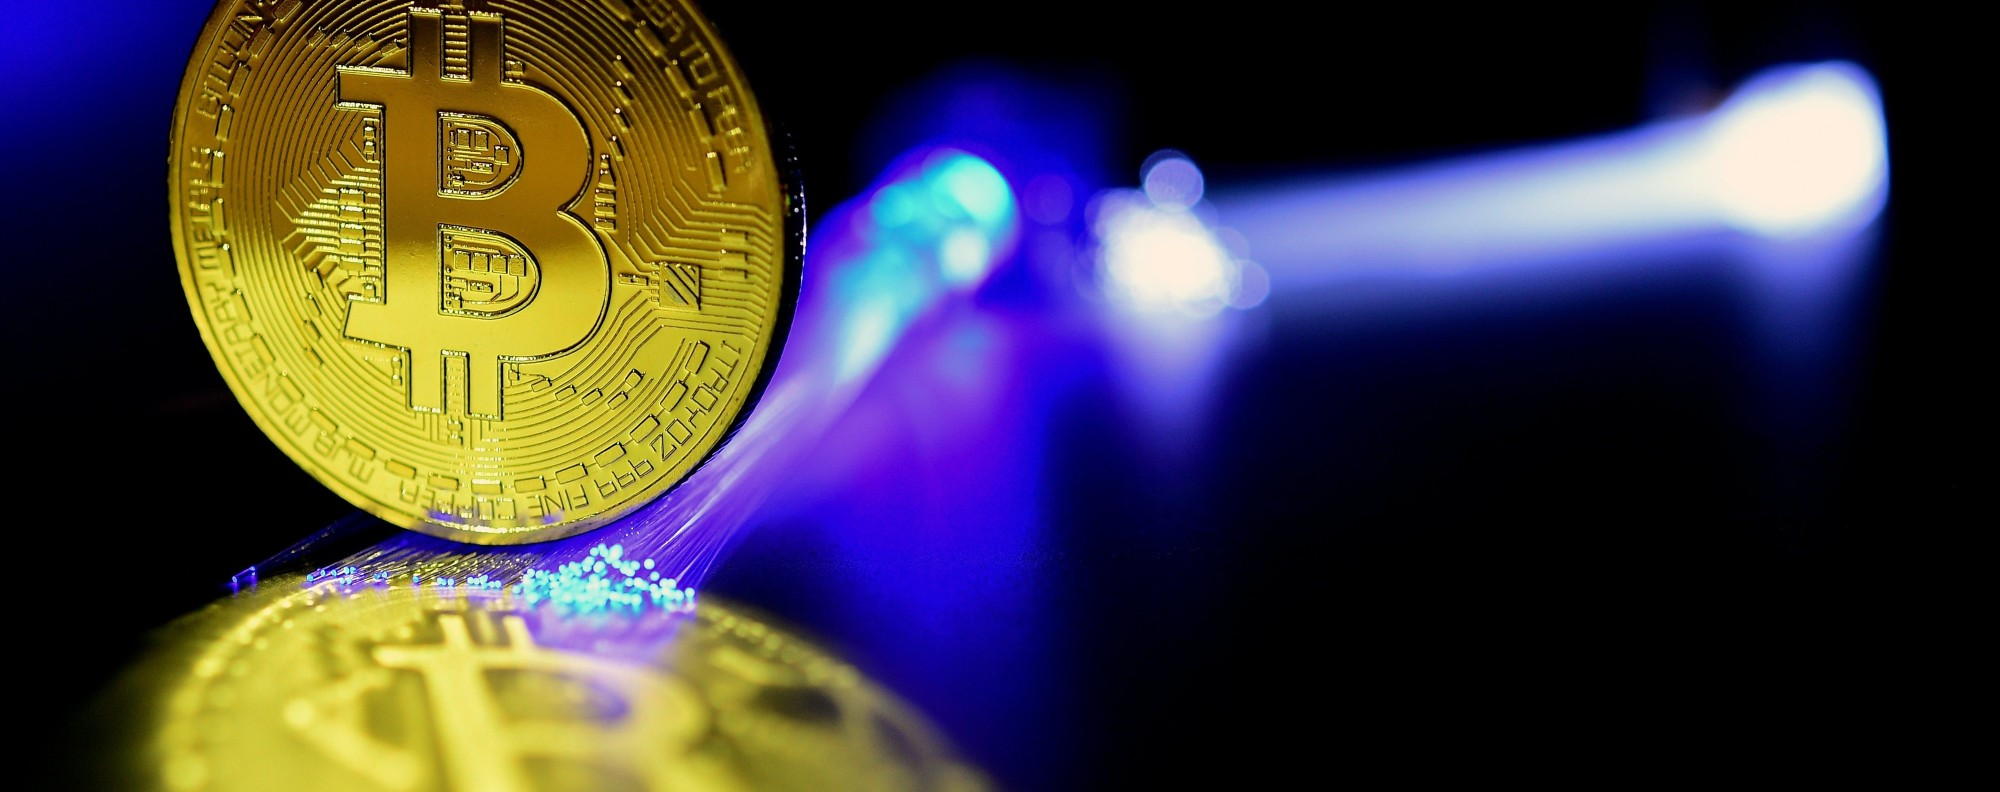 Bitcoin's value has fluctuated wildly in the past few months. Photo: EPA